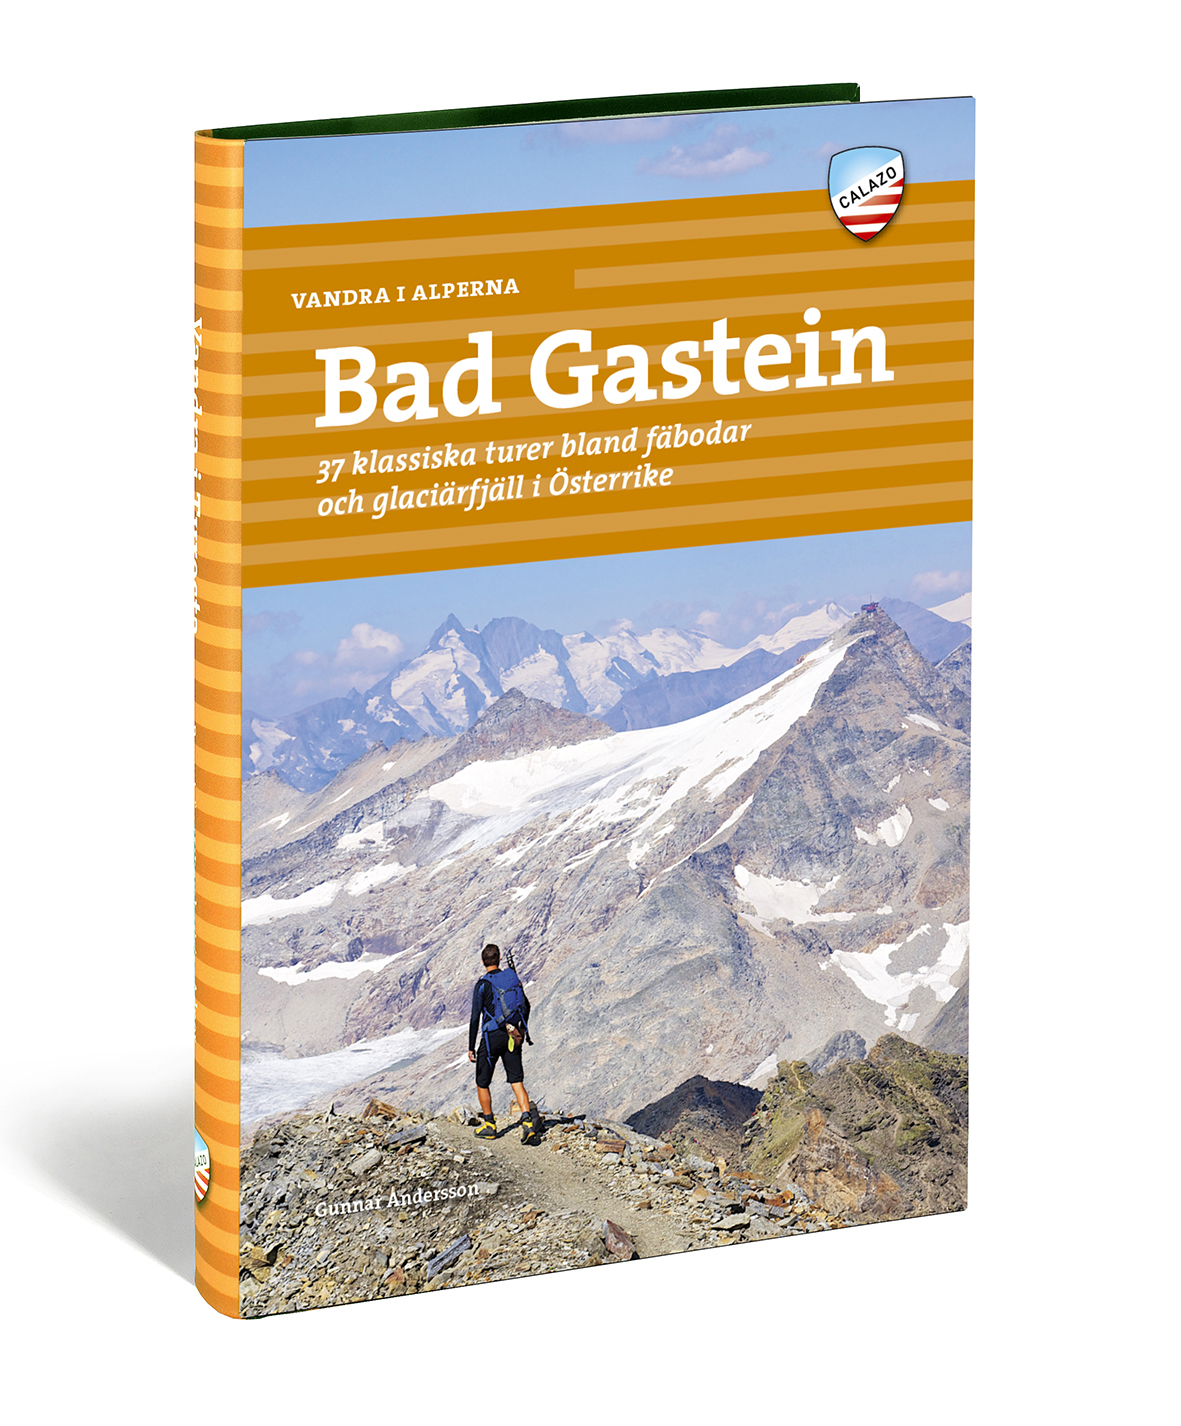 Bad_Gastein_small kopia